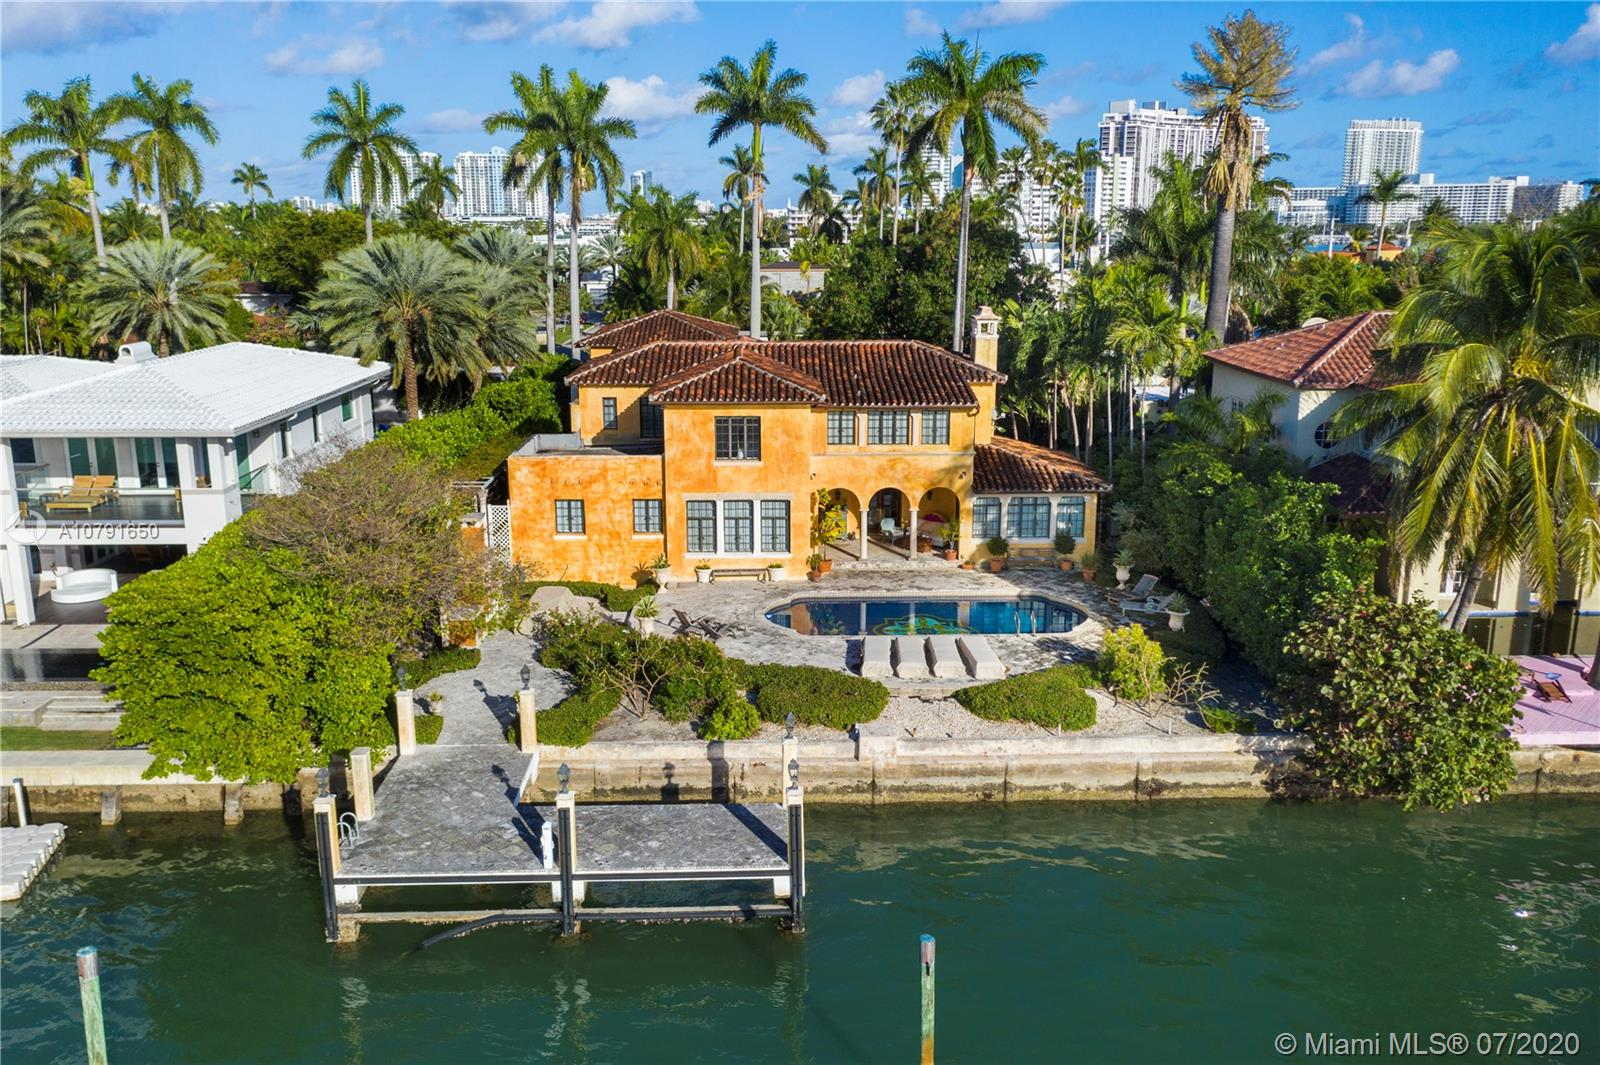 Located on the first of the Venetian Islands, Rivo Alto is walking distance to Sunset Harbor commercial district, parks and The Standard Hotel / Spa. This impeccably maintained Mediterranean Style home sits on an oversized 15,750 SqFt Lot with 90 ft of water frontage. Add your own touch to the current home through the possibility of an extension, build your dream home or enjoy its current layout at the price of the Land. The main house has 4 bedrooms 3 baths. The separate guest house contains a 1 bed / 1 bath ground floor suite + 2 car garage and a second floor 580 s/f 1 bed / 1 bath apartment with living room and kitchen. Per appraisal the total living area equal 4,899 SqFt.